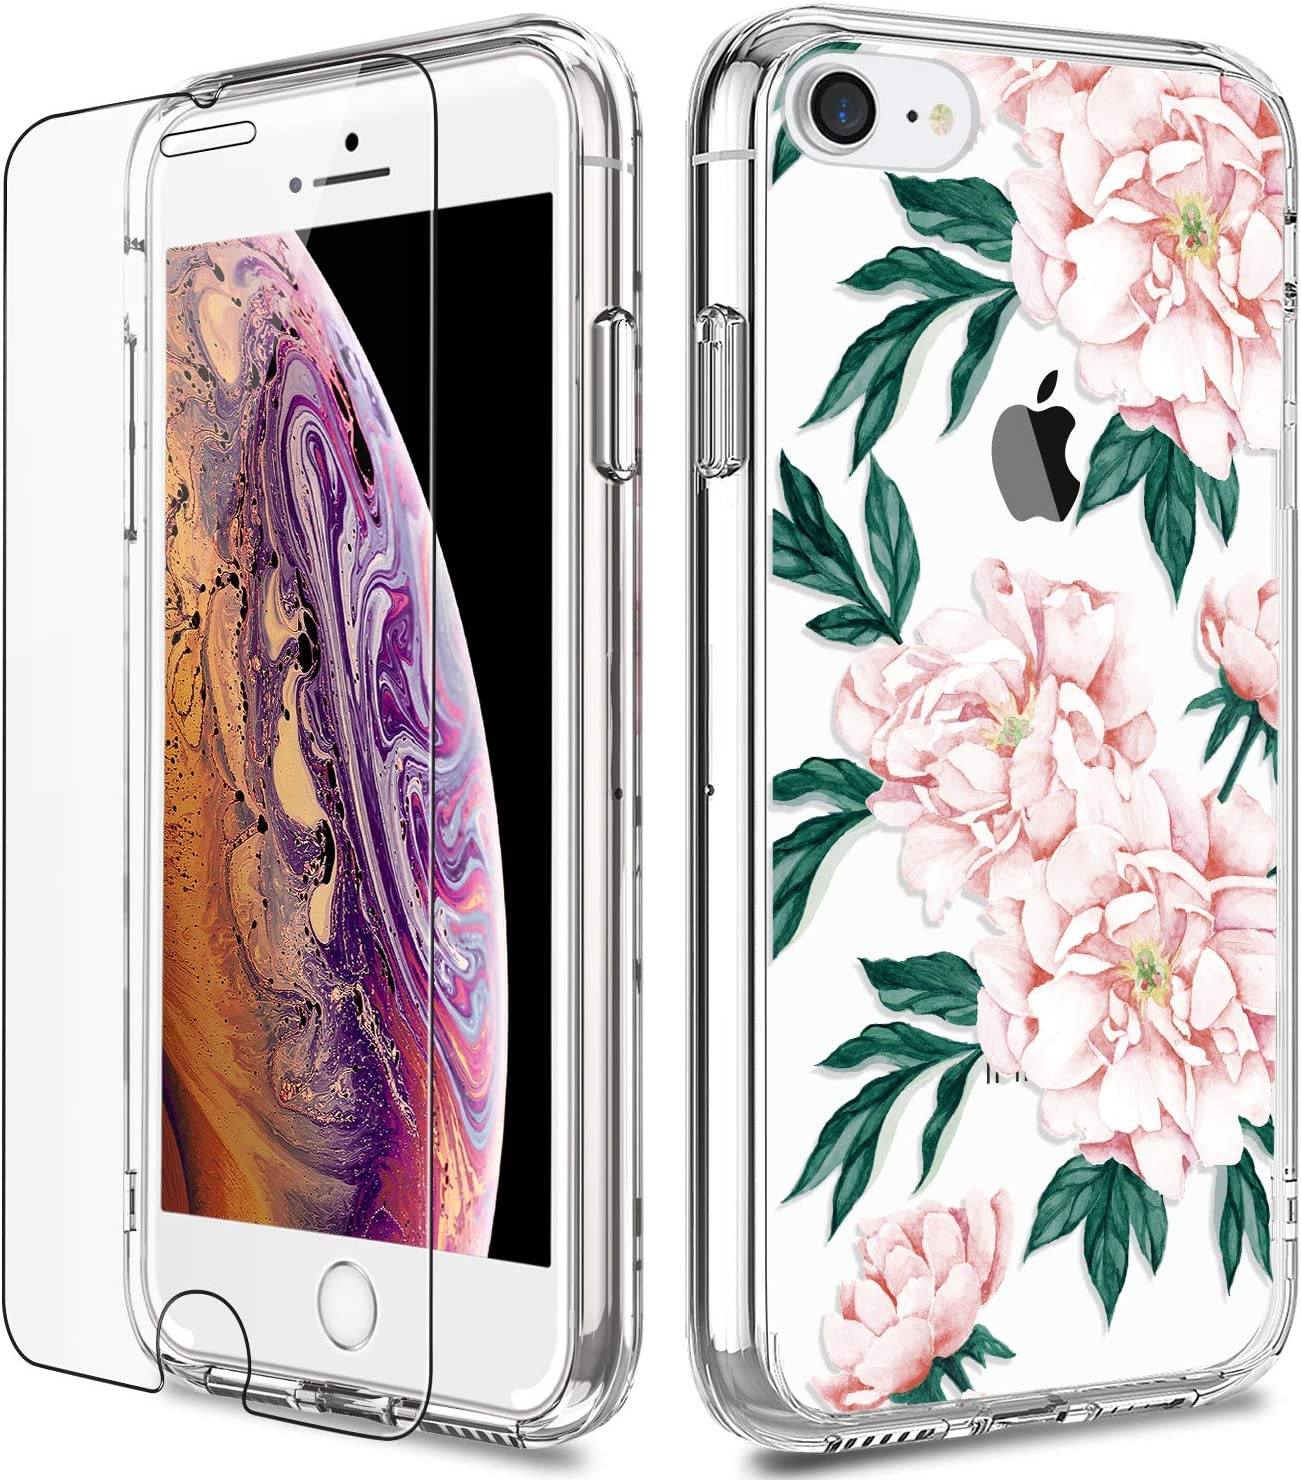 iPhone 7 Case, Clear iPhone 8 Case with Screen Protector, LUHOURI Girls Women Heavy Duty Protective Hard Case with Slim Soft TPU Bumper Cover Phone Case for iPhone 8 and iPhone 7, Pink Flower